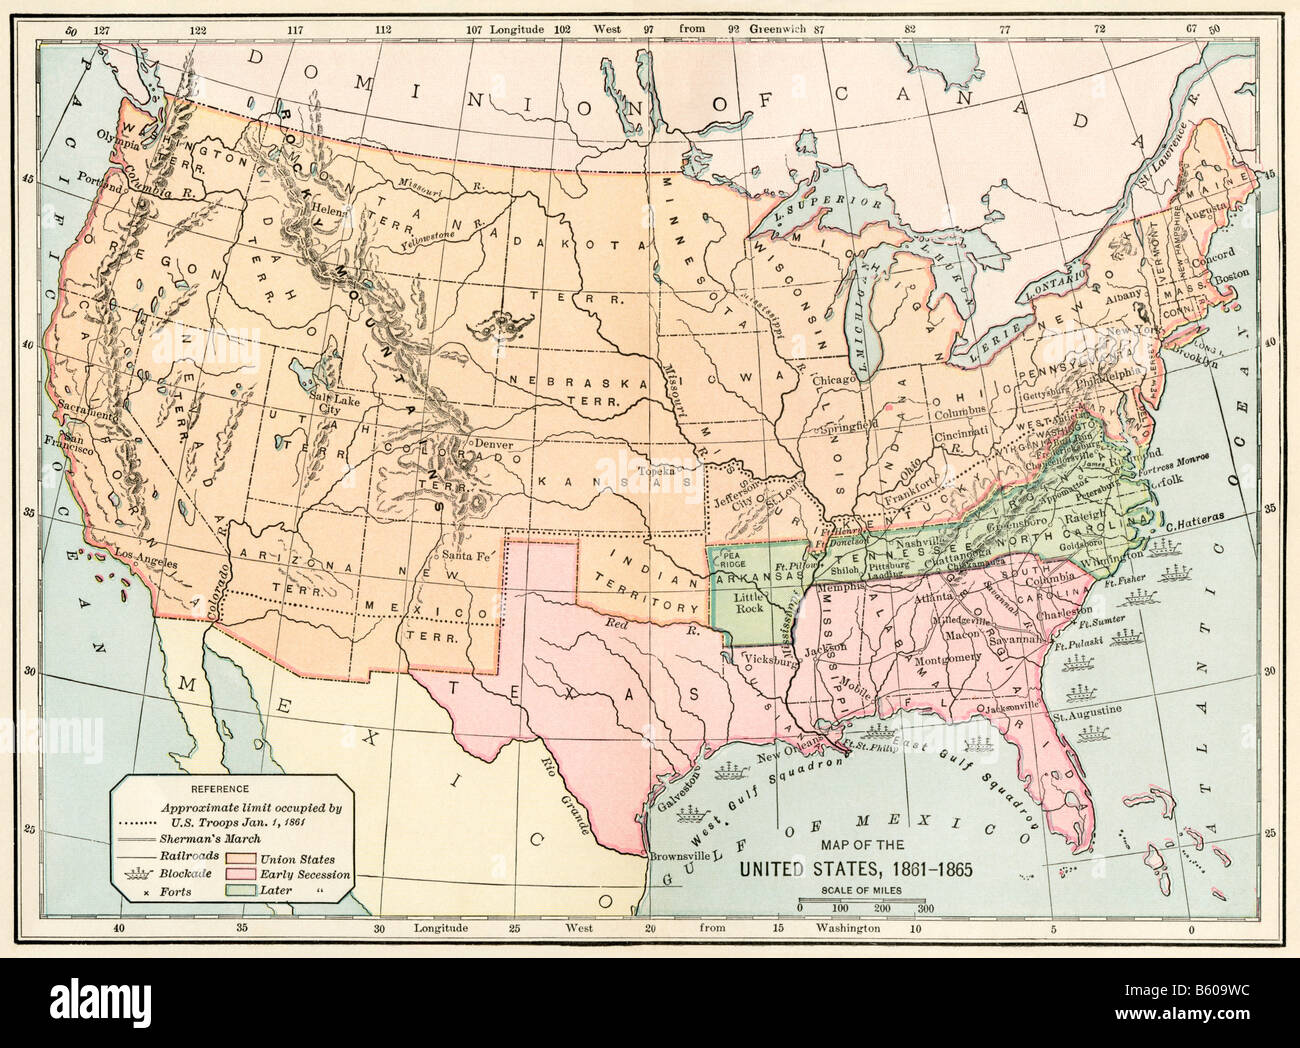 Map Of The United States During The Civil War To Stock - Map of us 1861